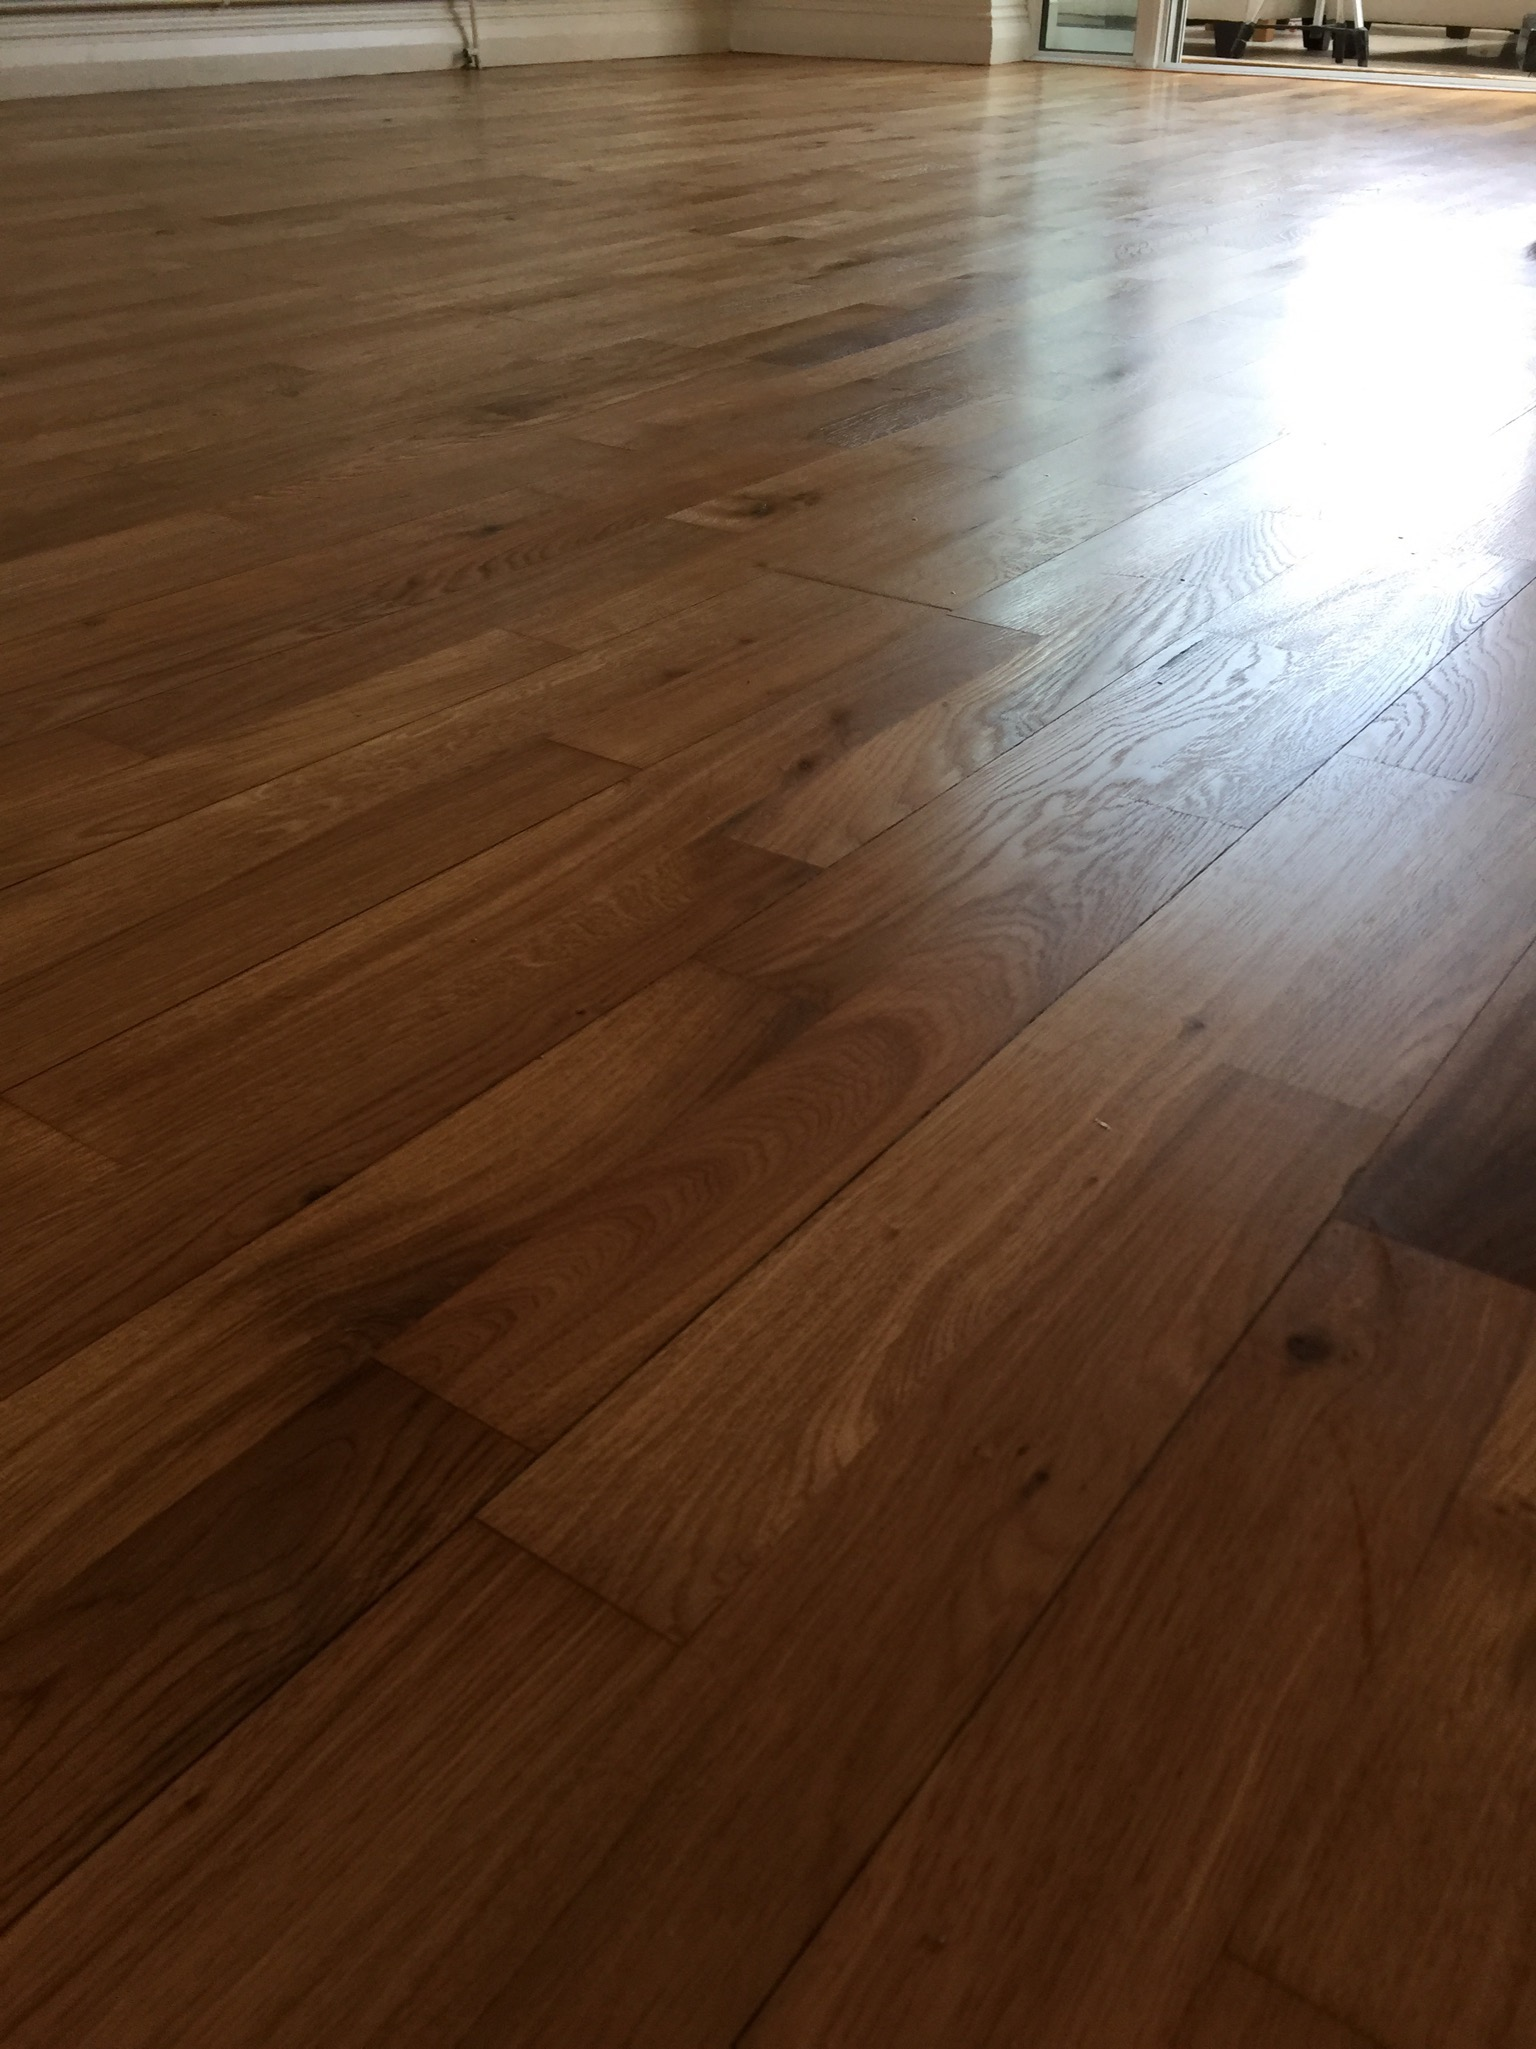 Oak Floor Sanding Archives Silver Lining Floor Care